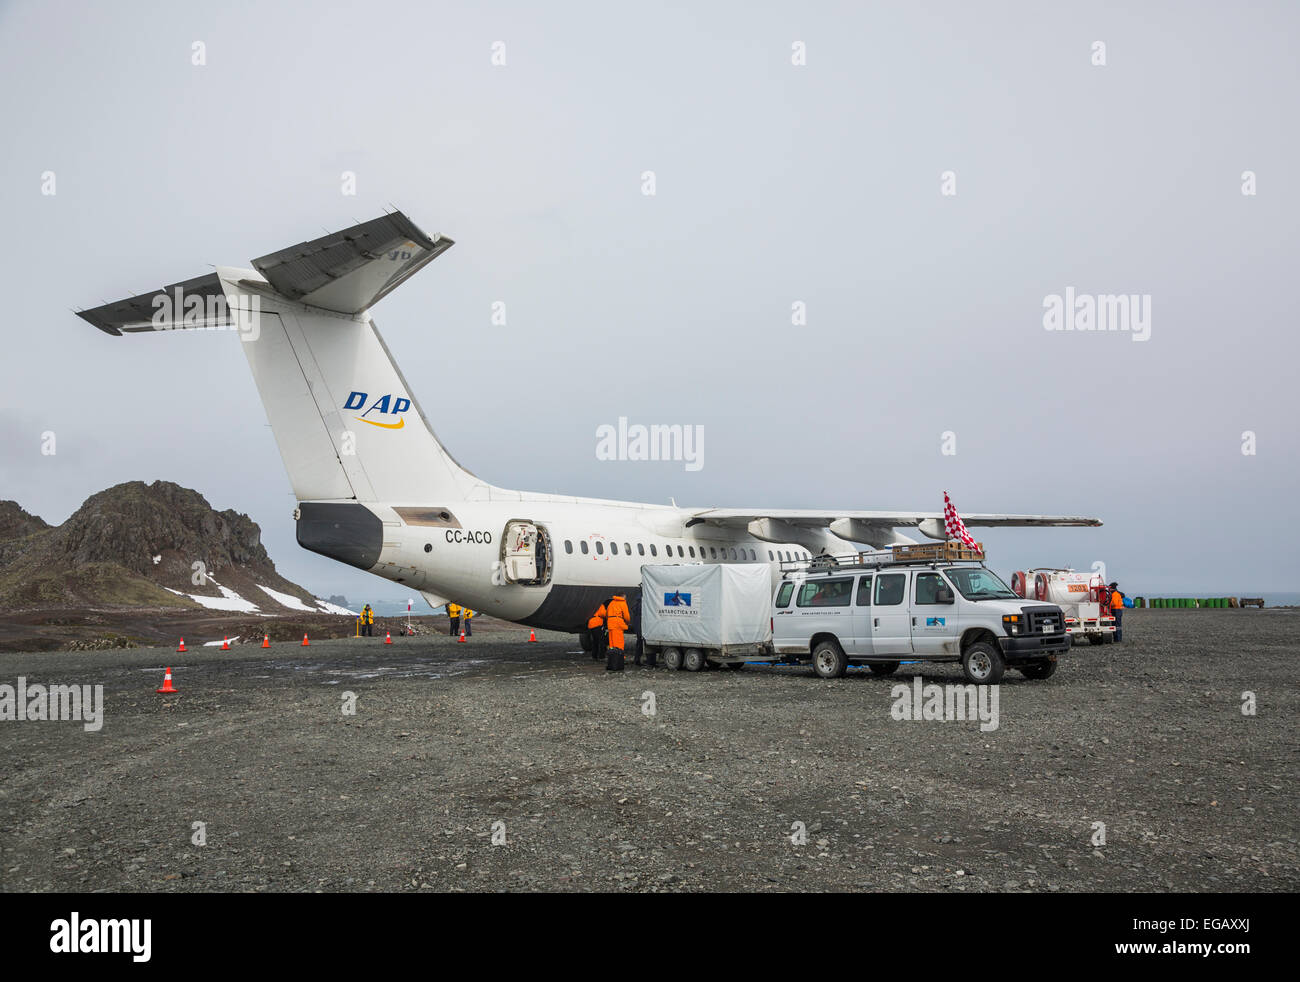 BAE 146-200 high wing plane at Frei station, King George Island, Antarctica - Stock Image